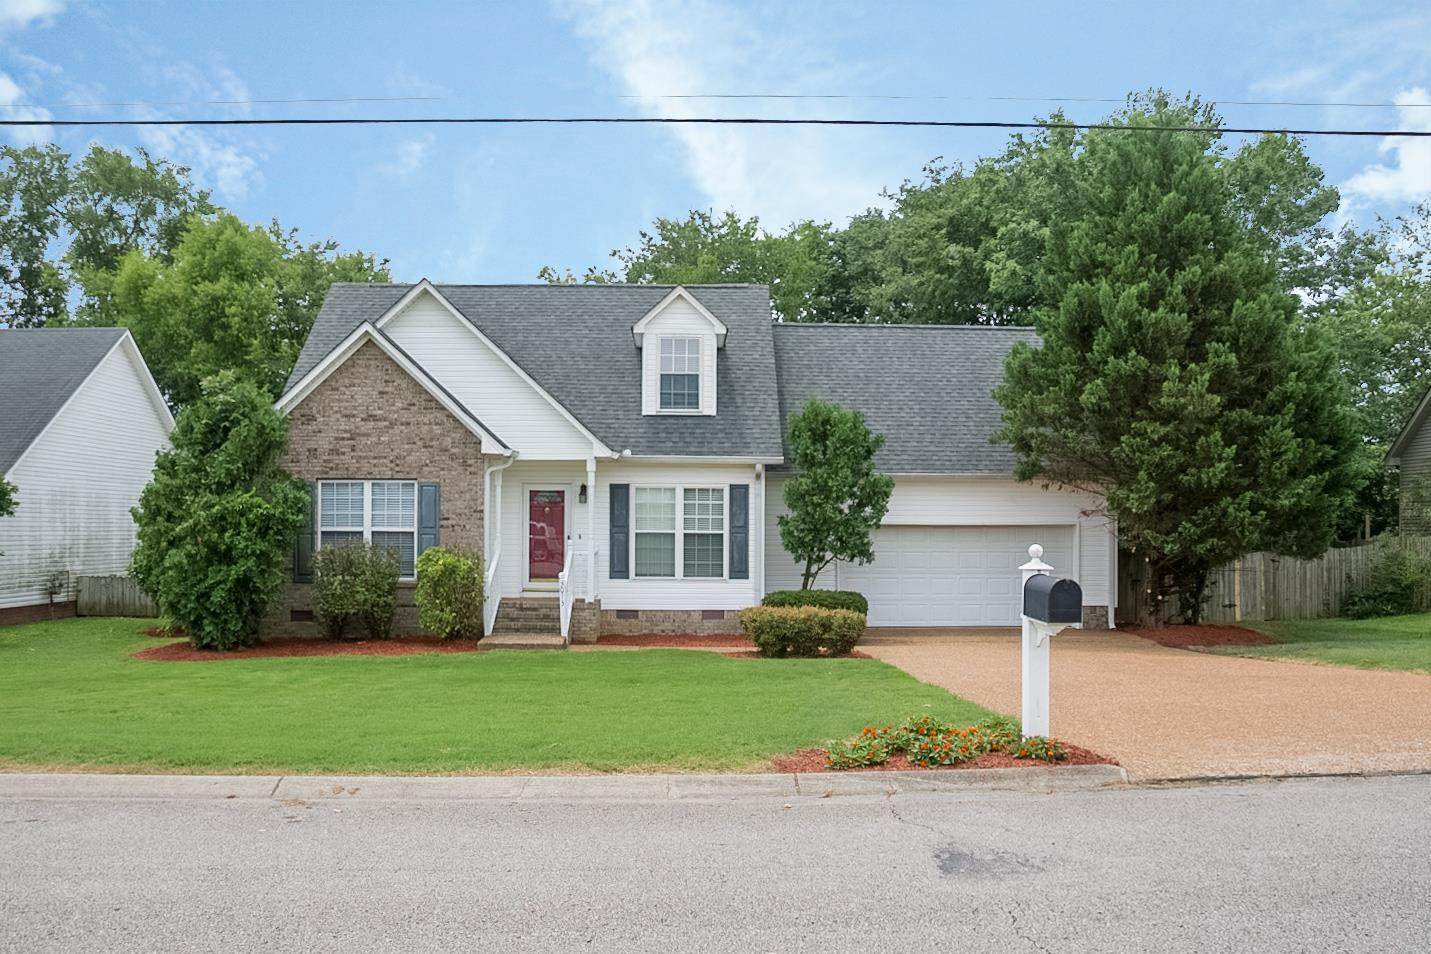 3013 Candlelite Dr, Spring Hill, TN 37174 - Spring Hill, TN real estate listing